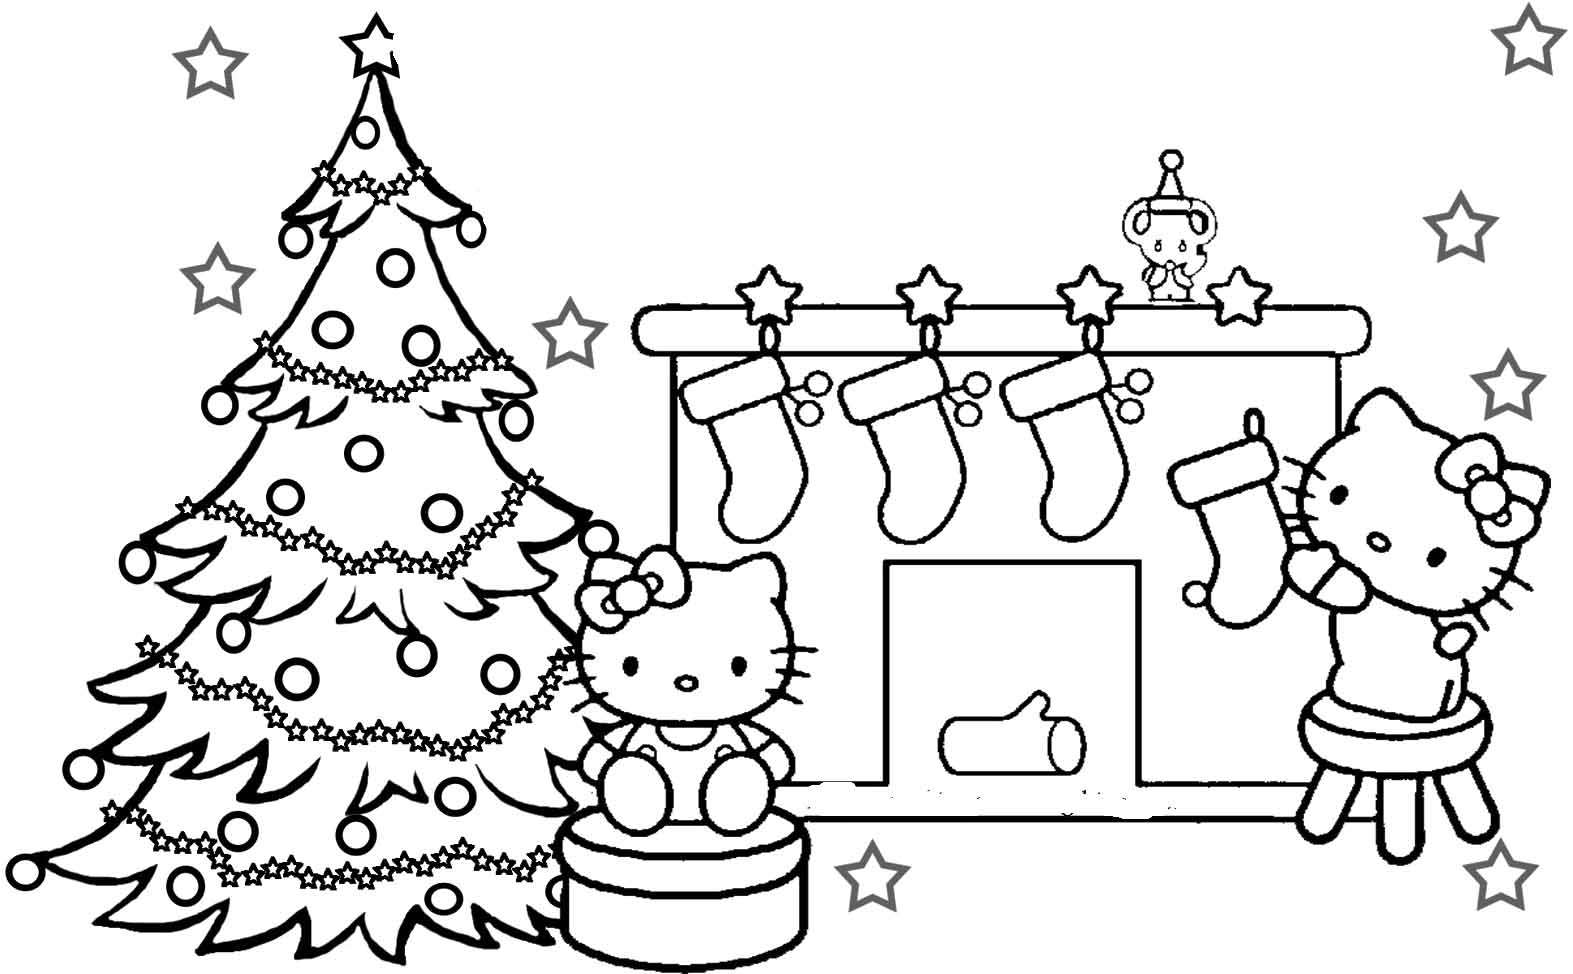 Meery-Christmas-Coloring-Pages-2016-Xmas